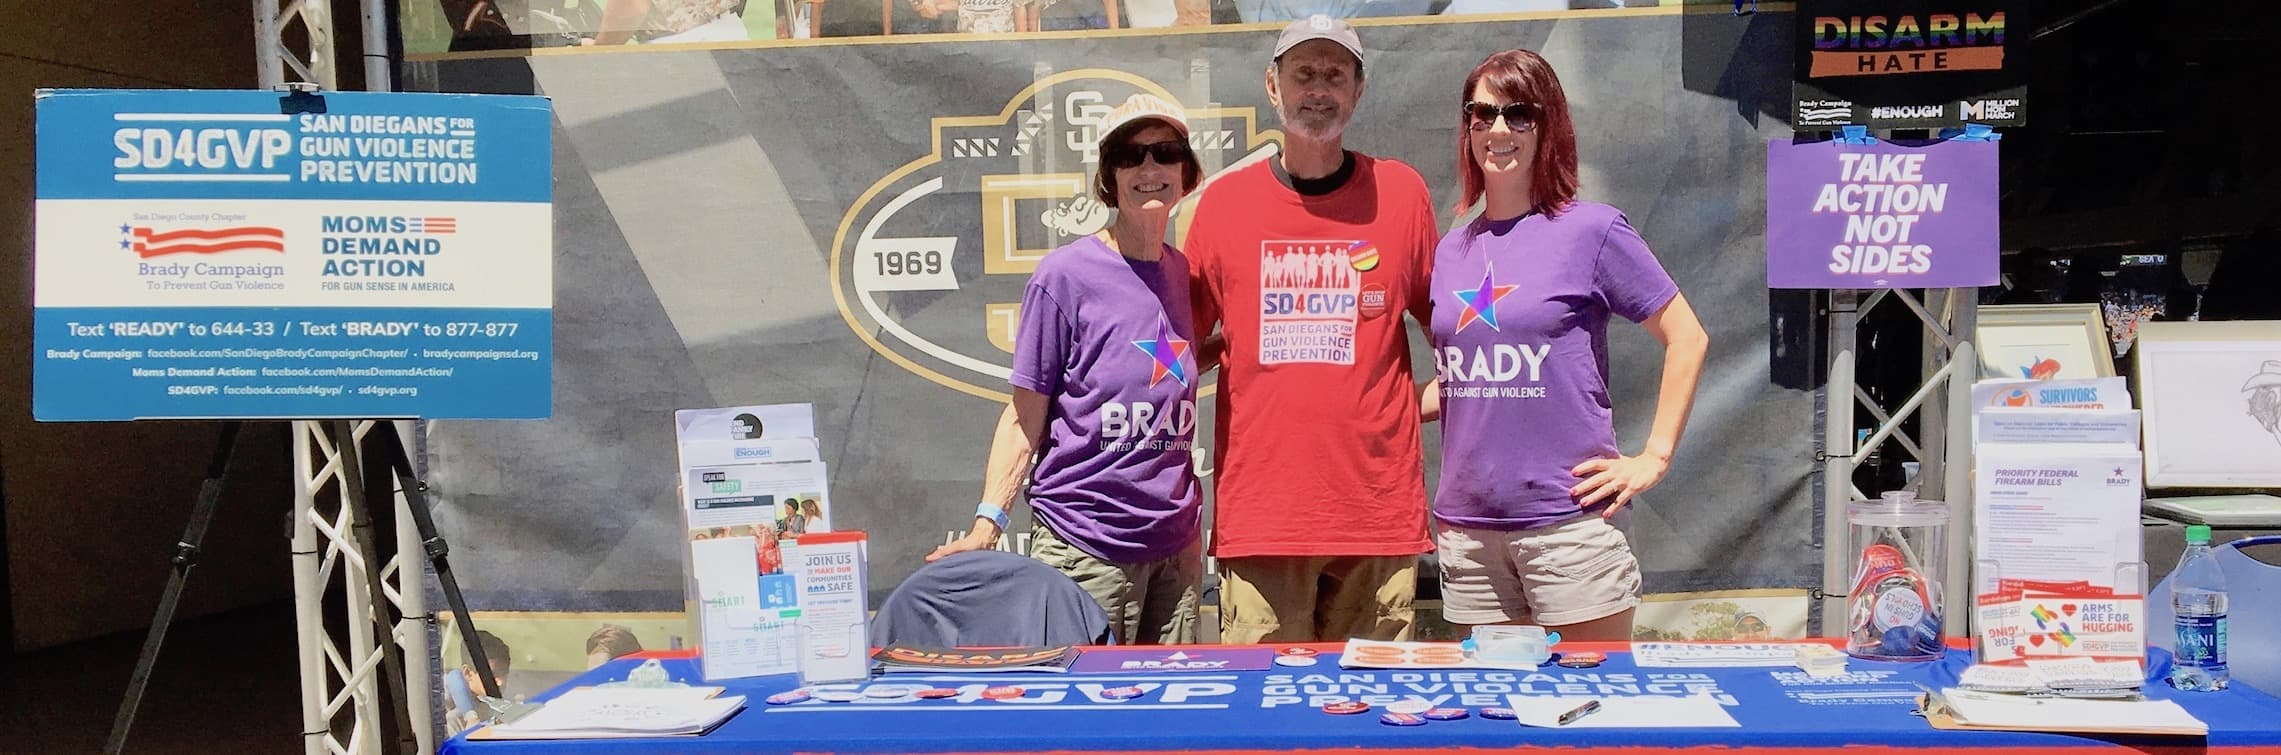 San Diegans for Gun Violence Prevention Padres v Red Sox Aug 2019